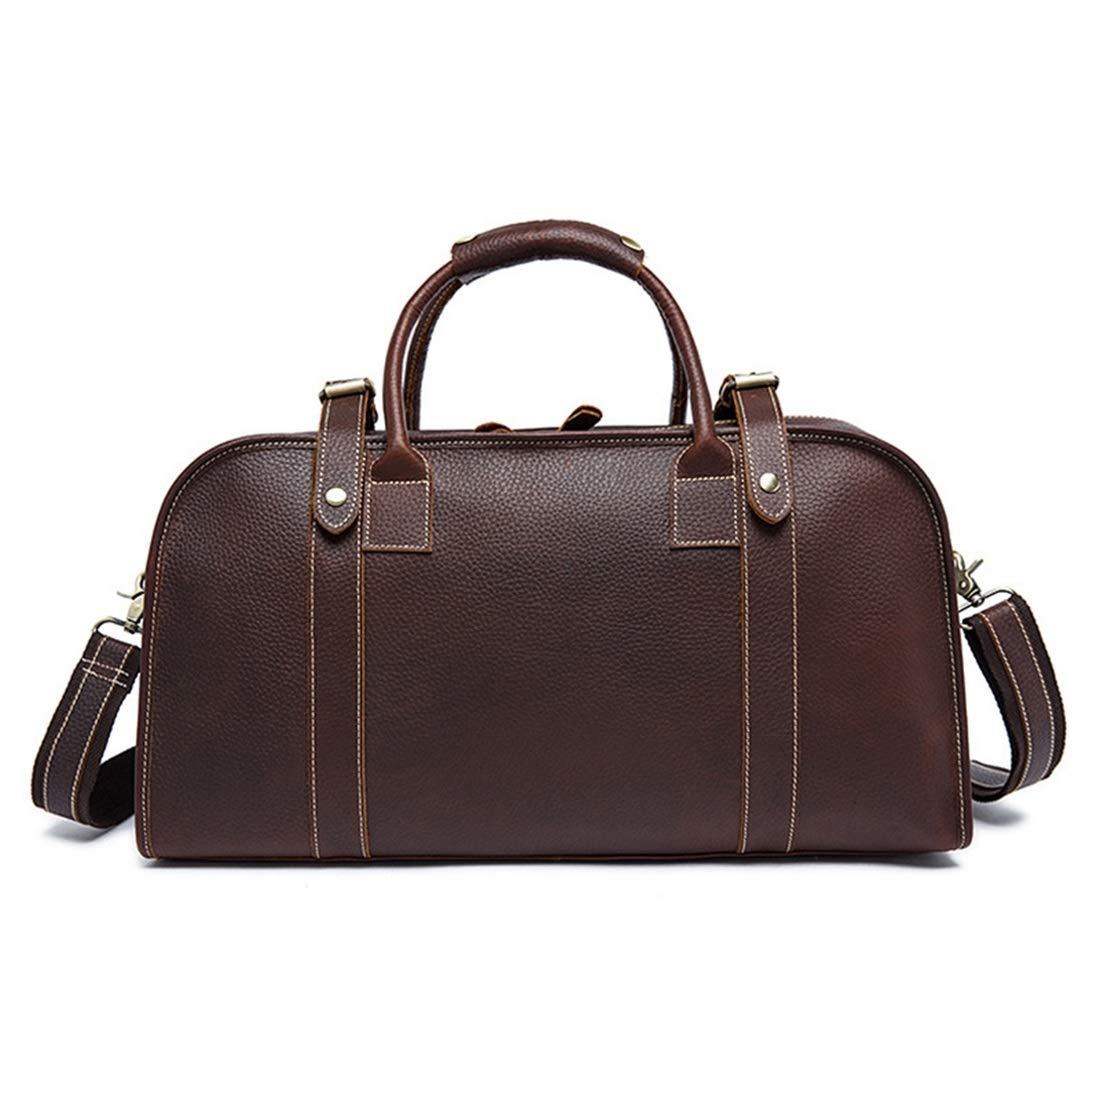 RABILTY Mens Large-Capacity Leather Shoulder Hand Luggage Bag Brown Travel Duffel Bag Color : Dark Brown